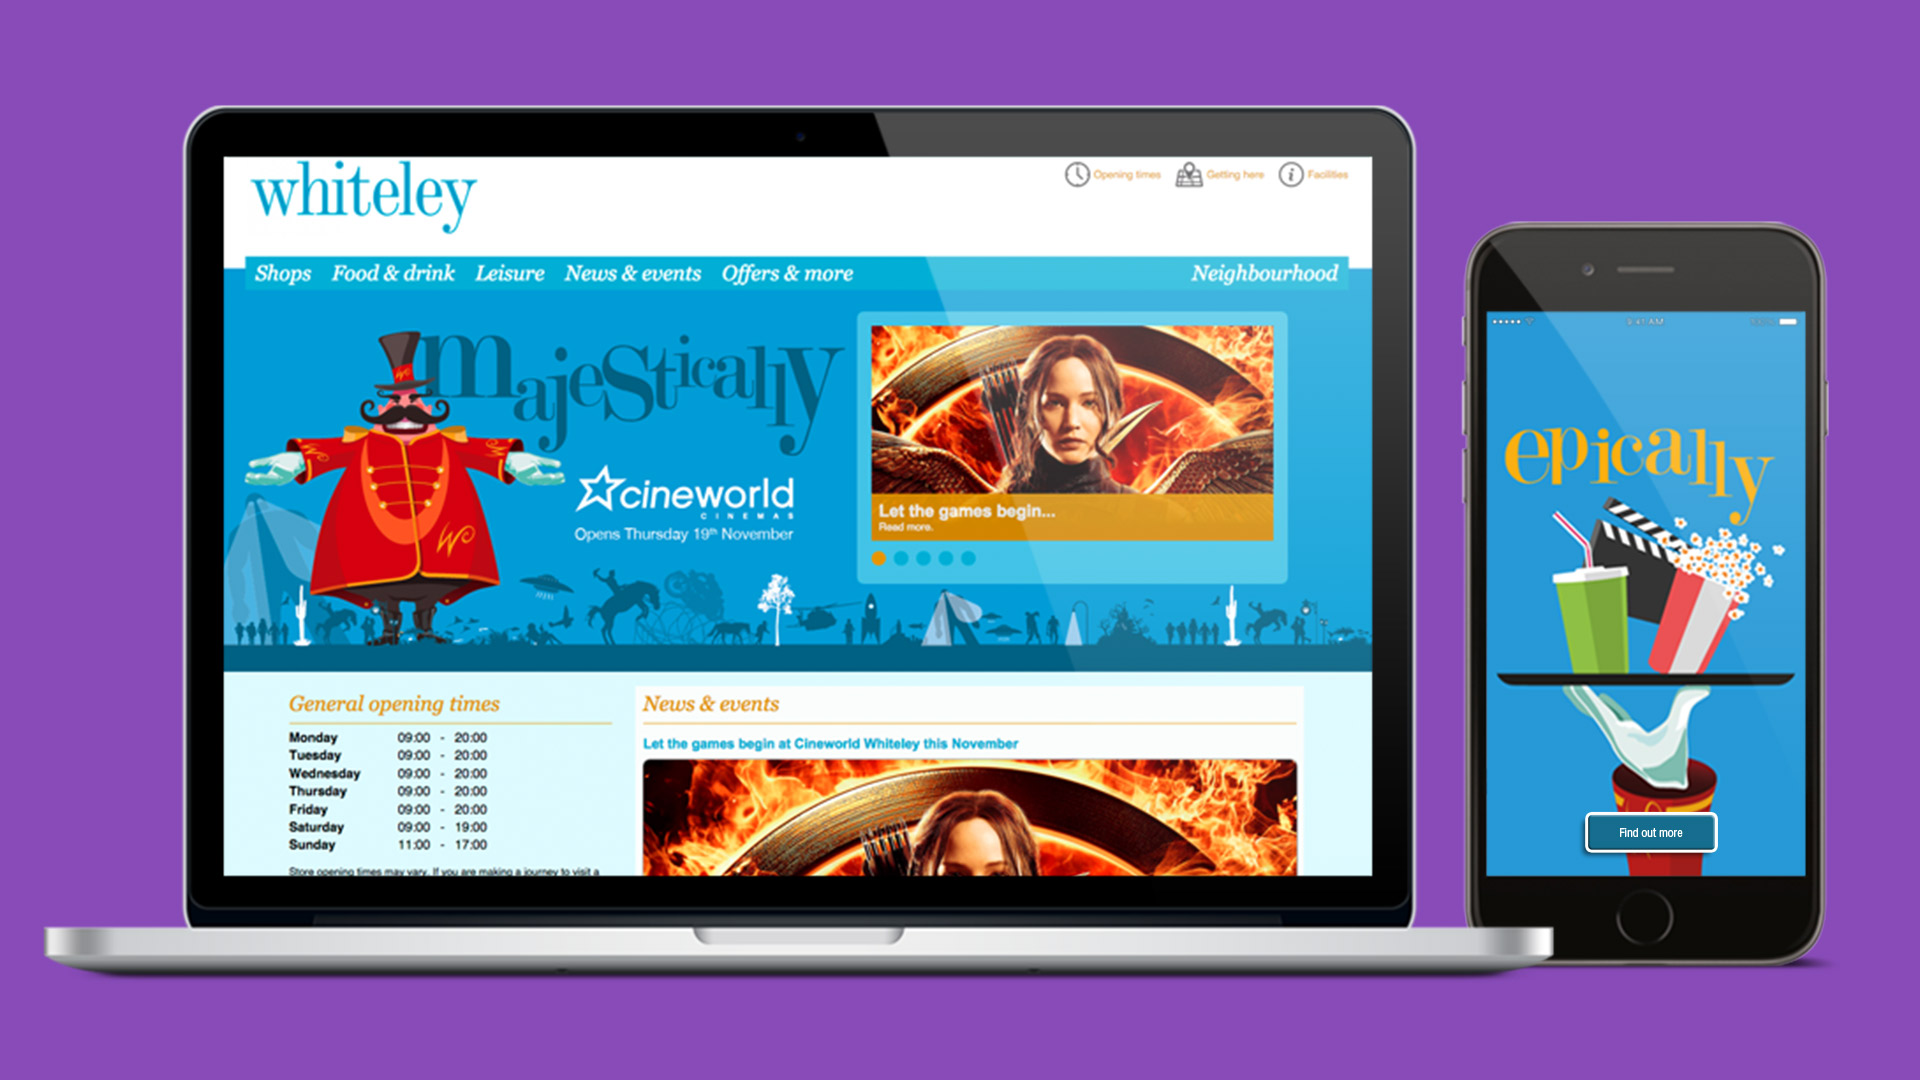 Whiteley Cineworld launch website and mobile